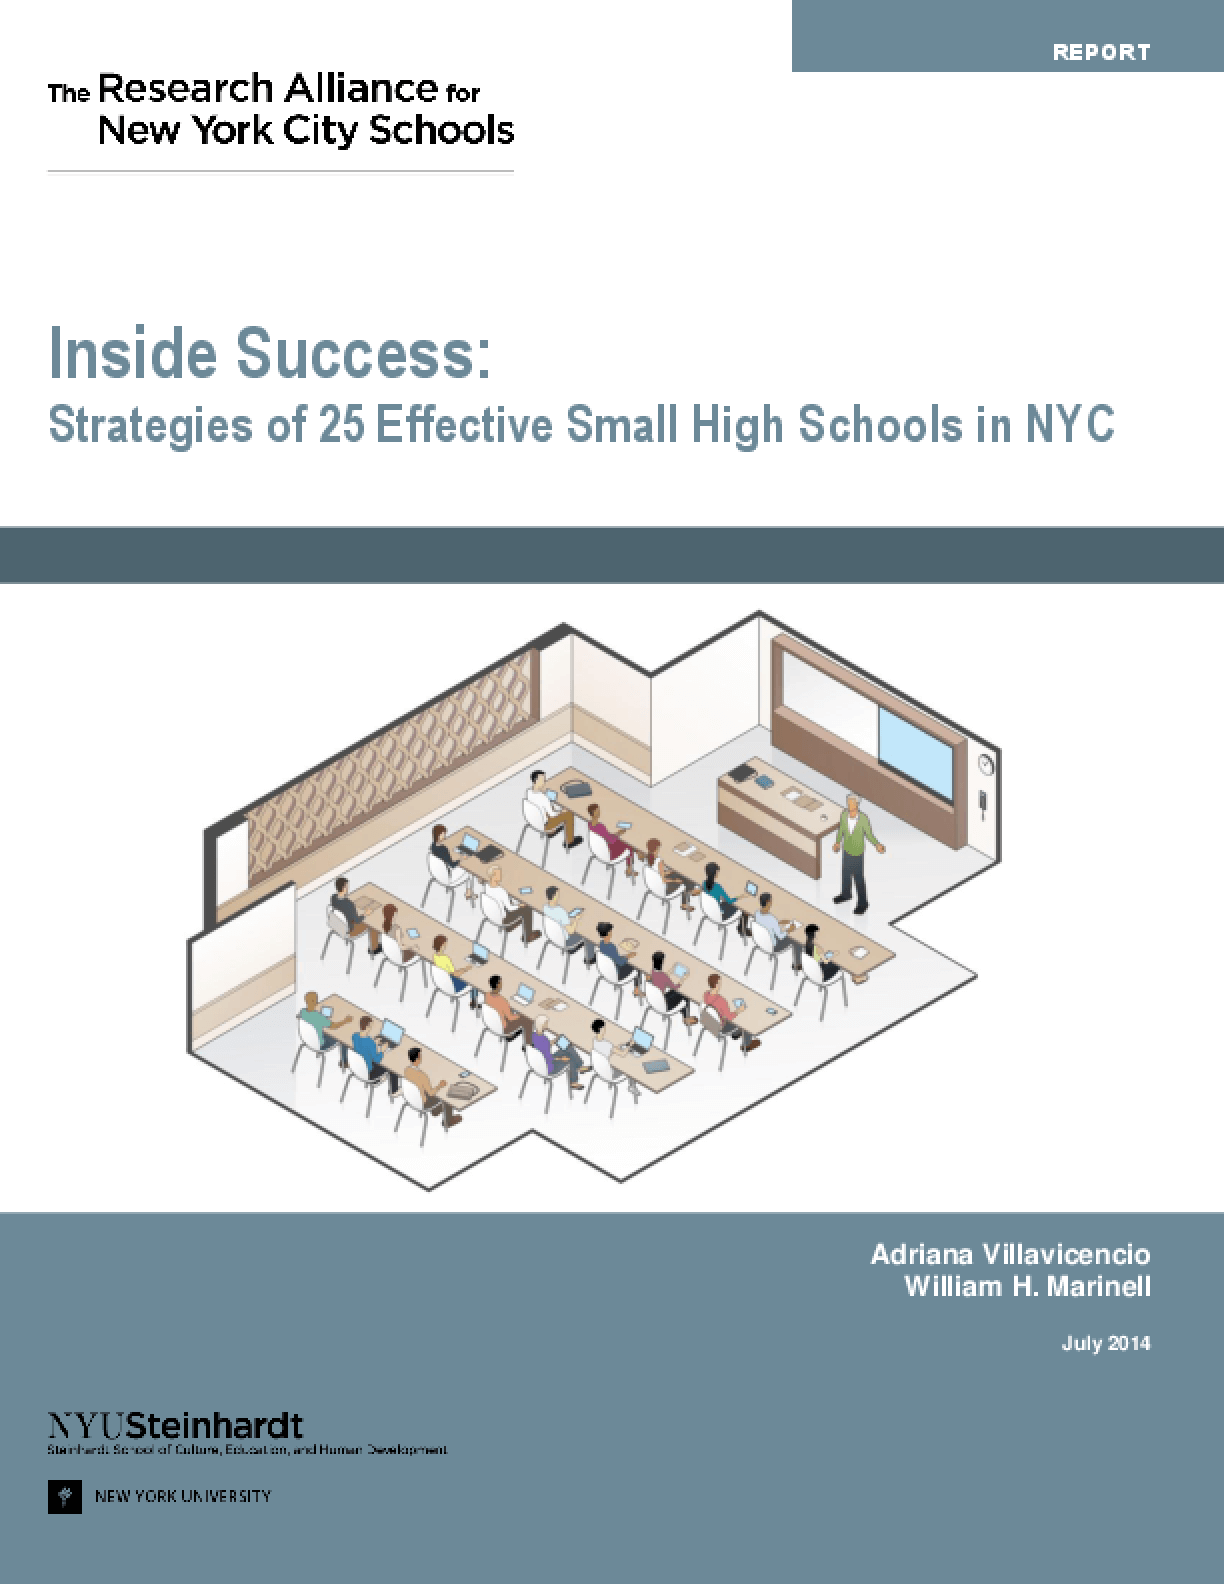 Inside Success: Strategies of 25 Effective Small High Schools in NYC